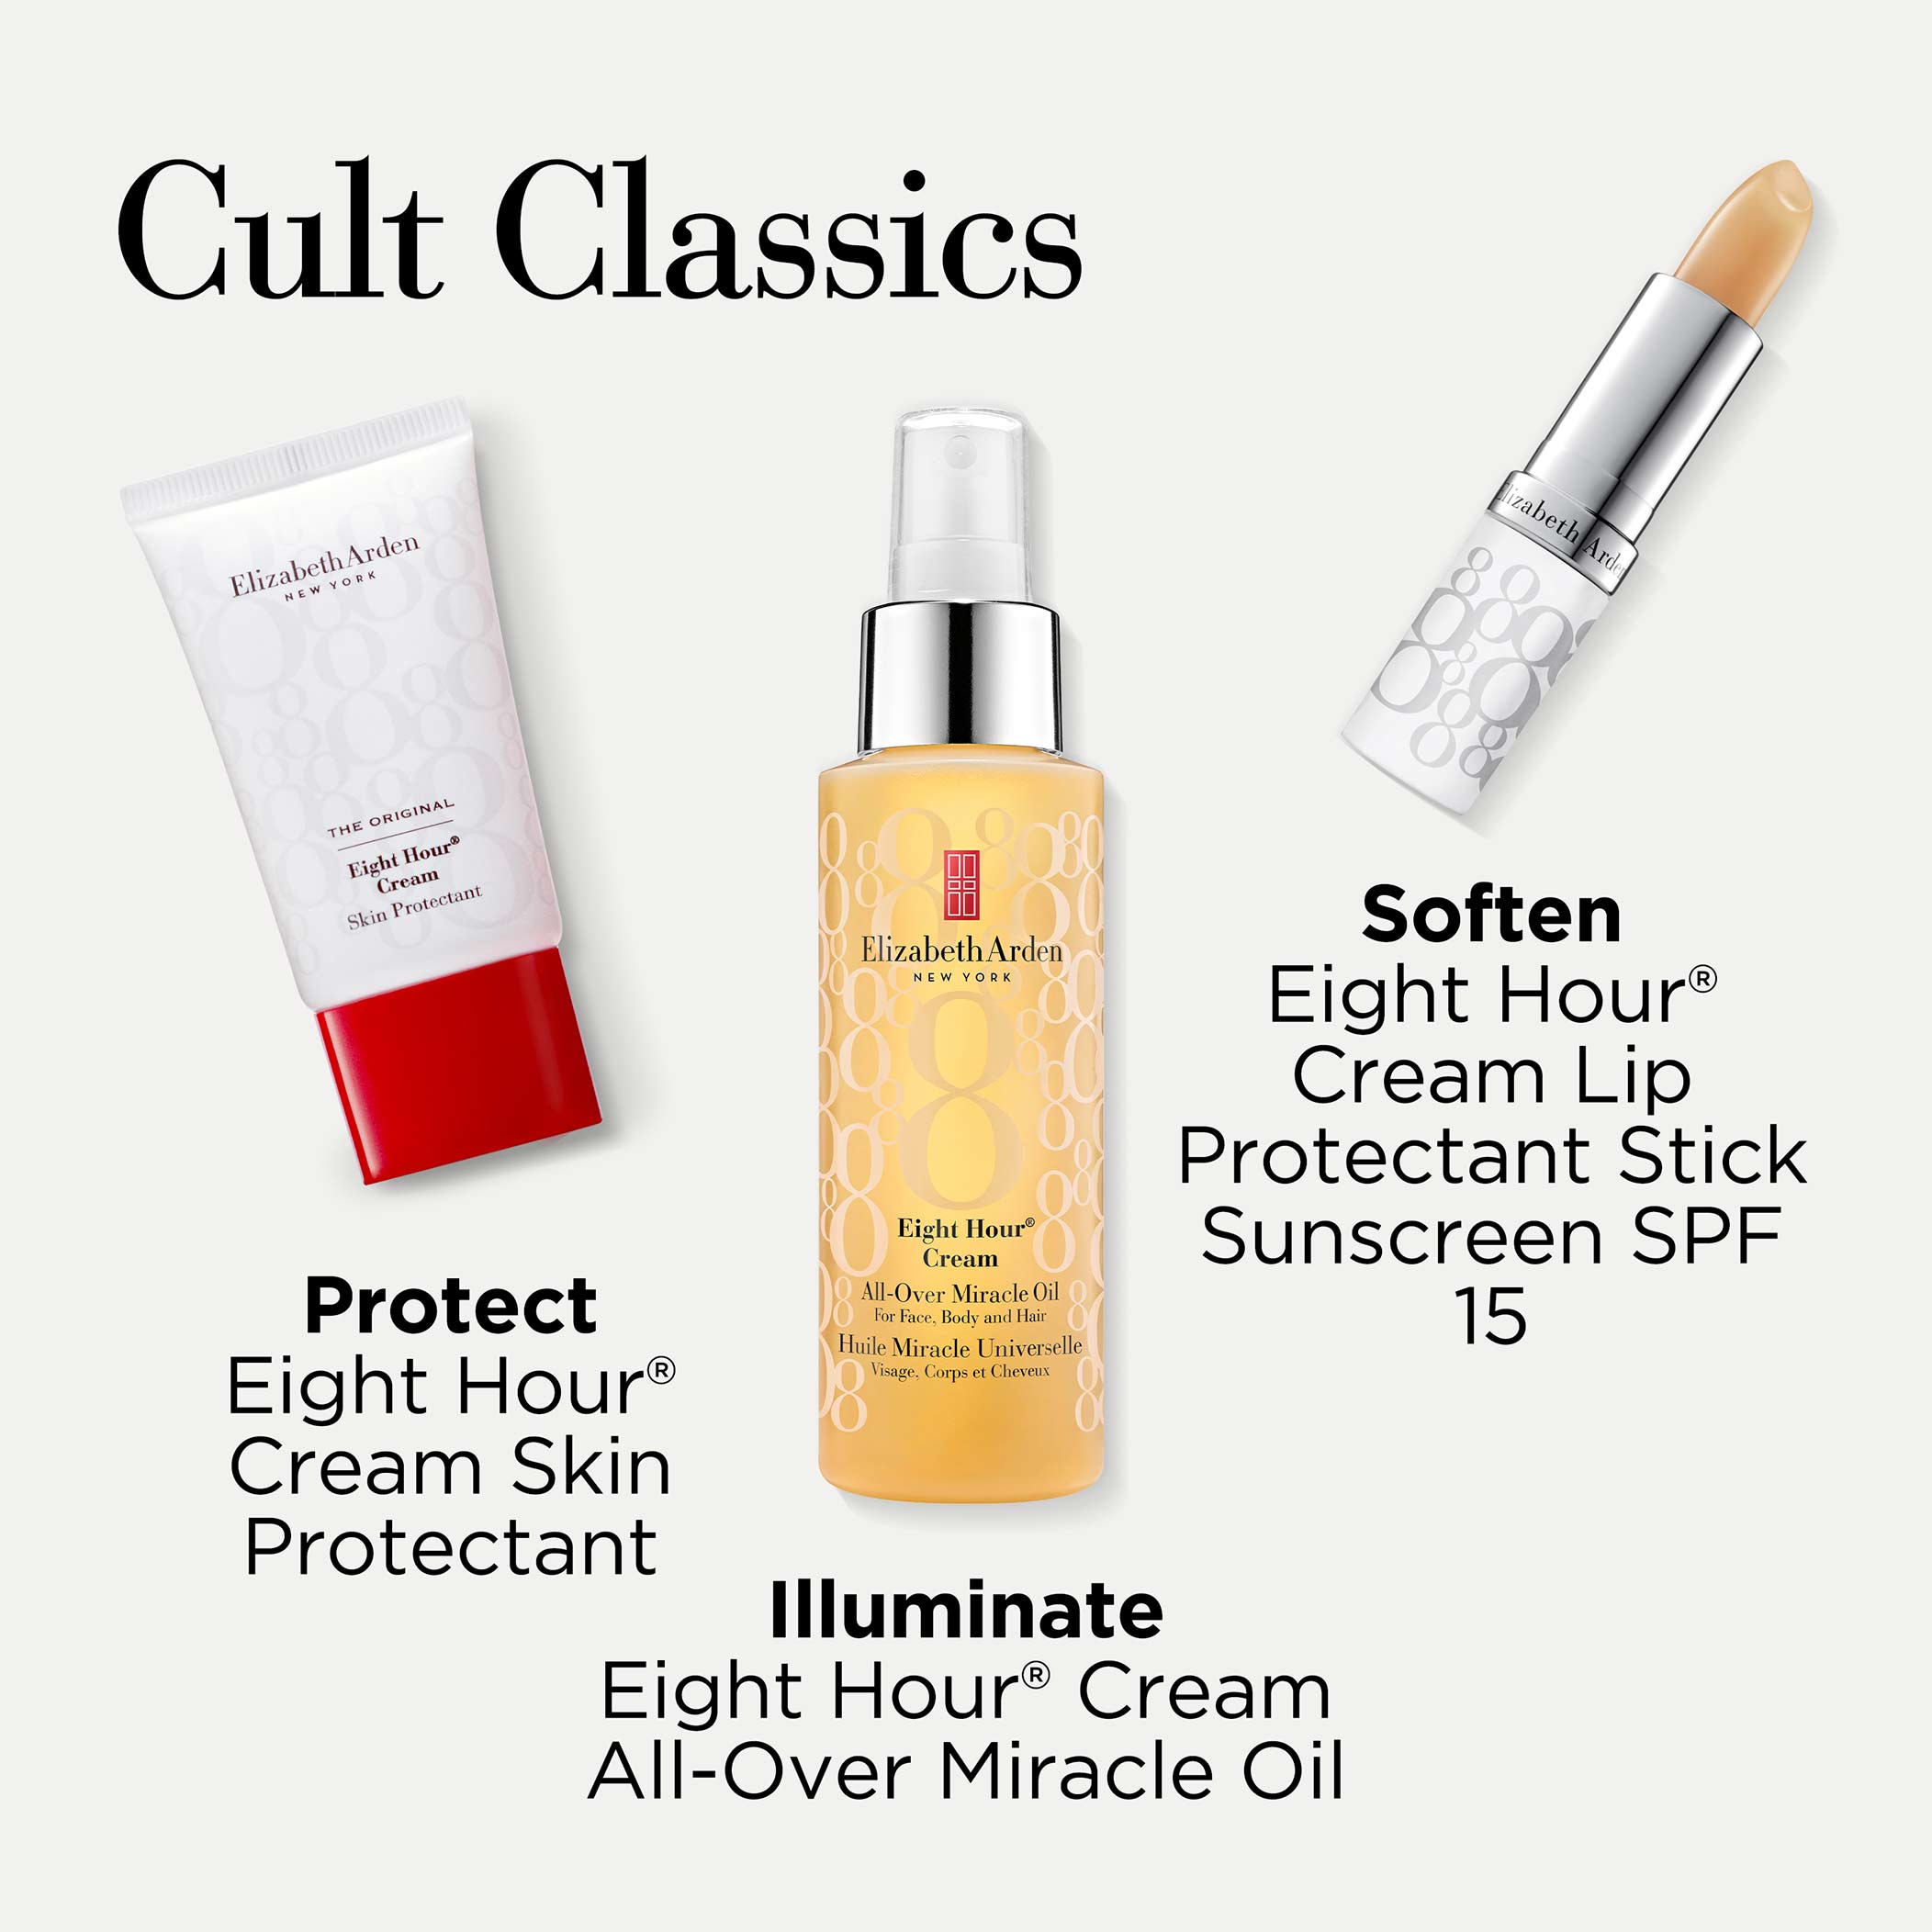 Includes: Eight Hour Skin Protectant, Eight Hour All-Over Miracle Oil and Eight Hour Cream Lip Protectant Stick Sunscreen SPF15